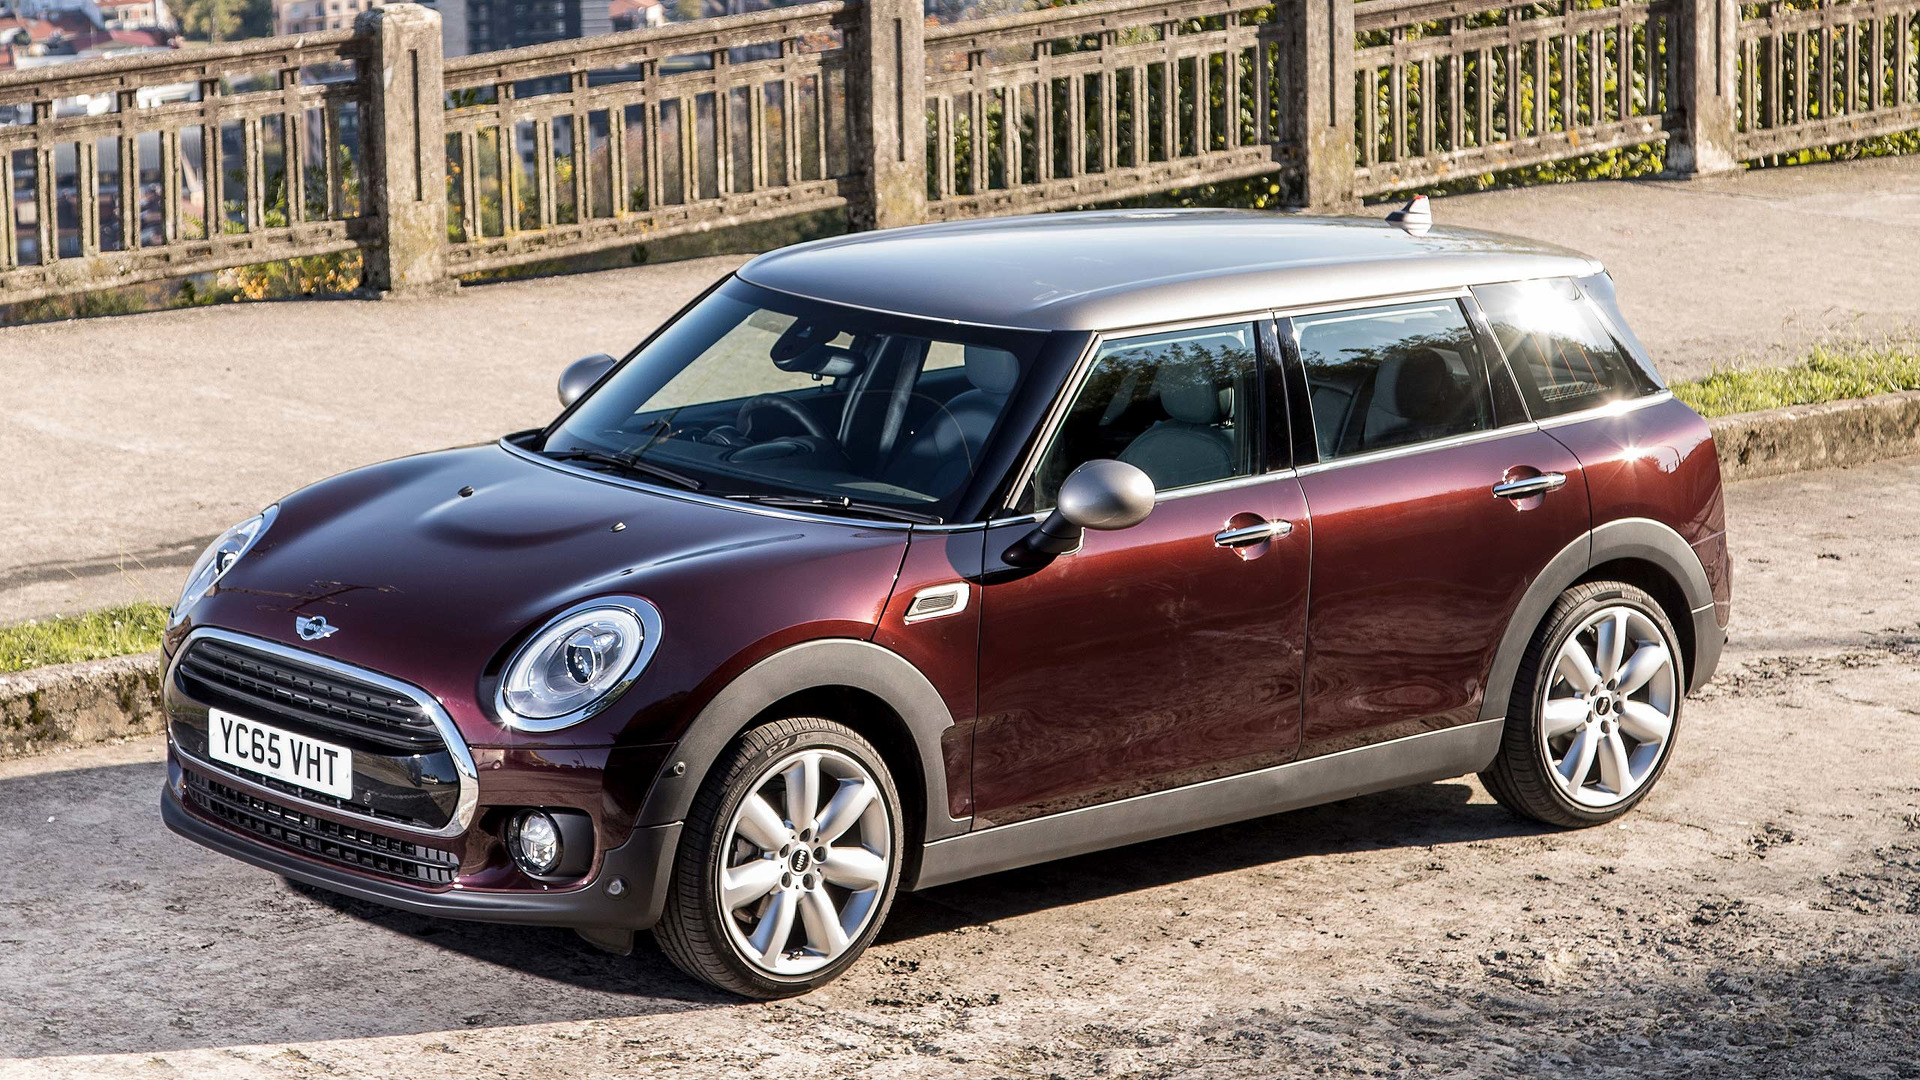 Mini Clubman News And Reviews Motor1com Uk